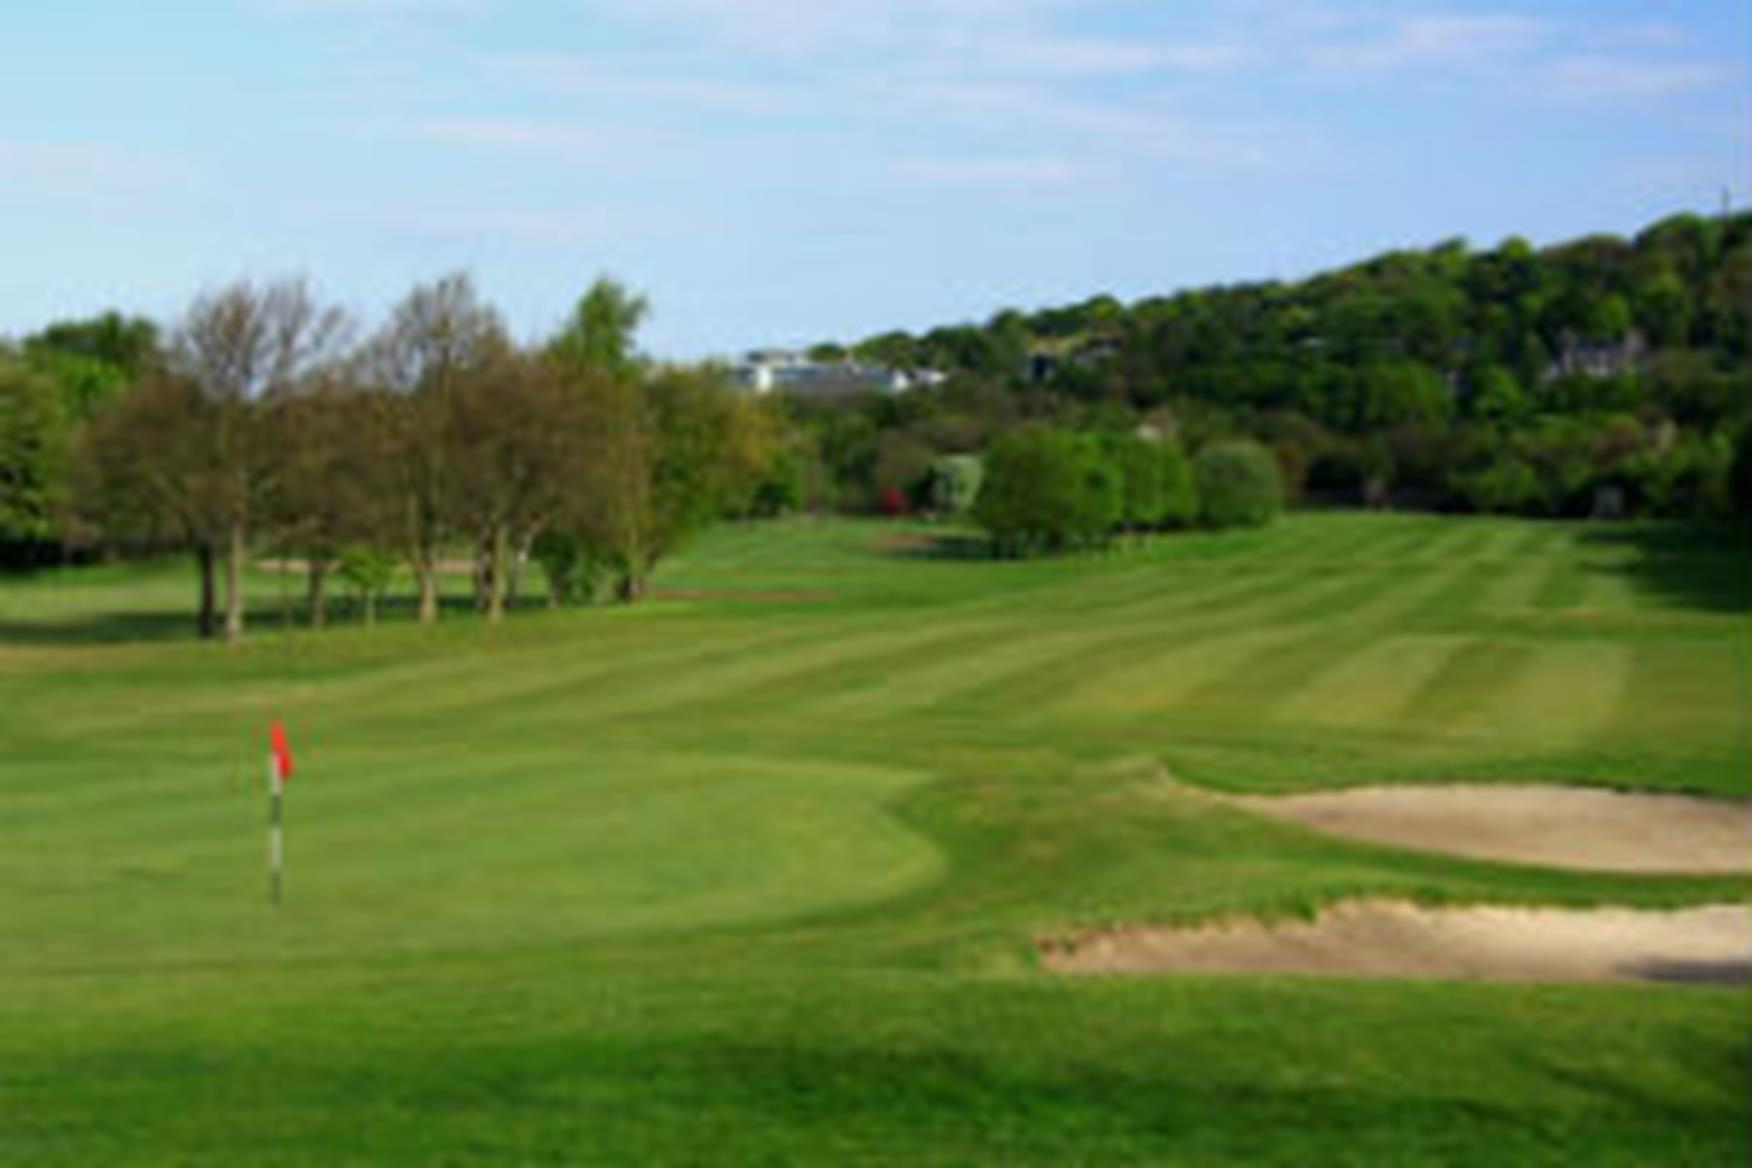 Golf Quotes About Life Gogarburn Golf Club  Golf Course In Newbridge  Golf Course